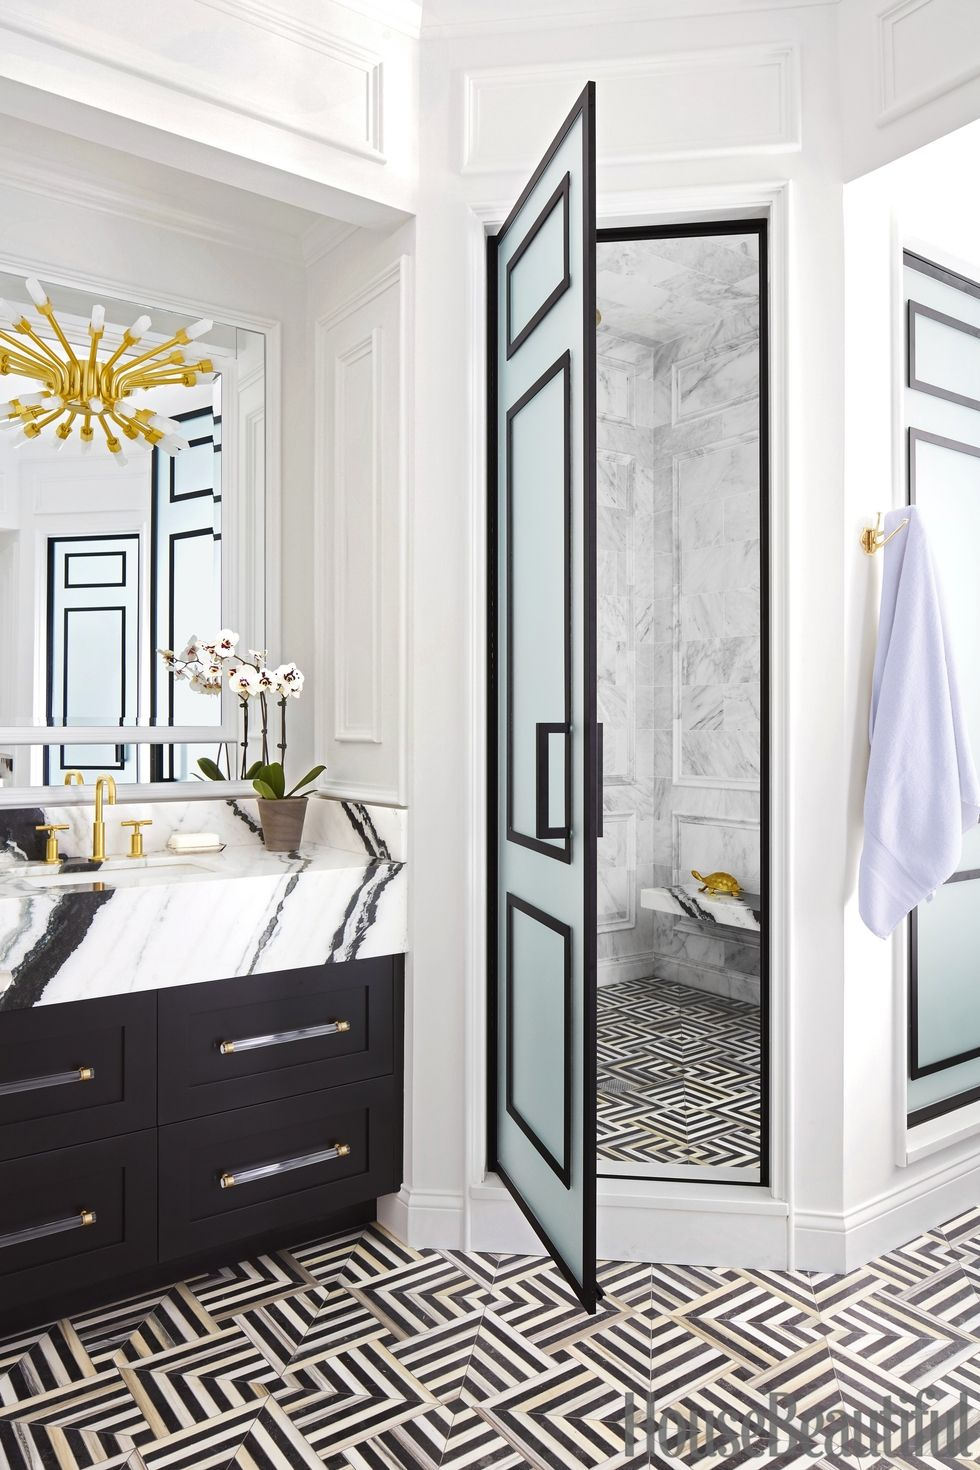 Shop the room archives page 3 of 51 shoproomideas for Bathroom design 2019